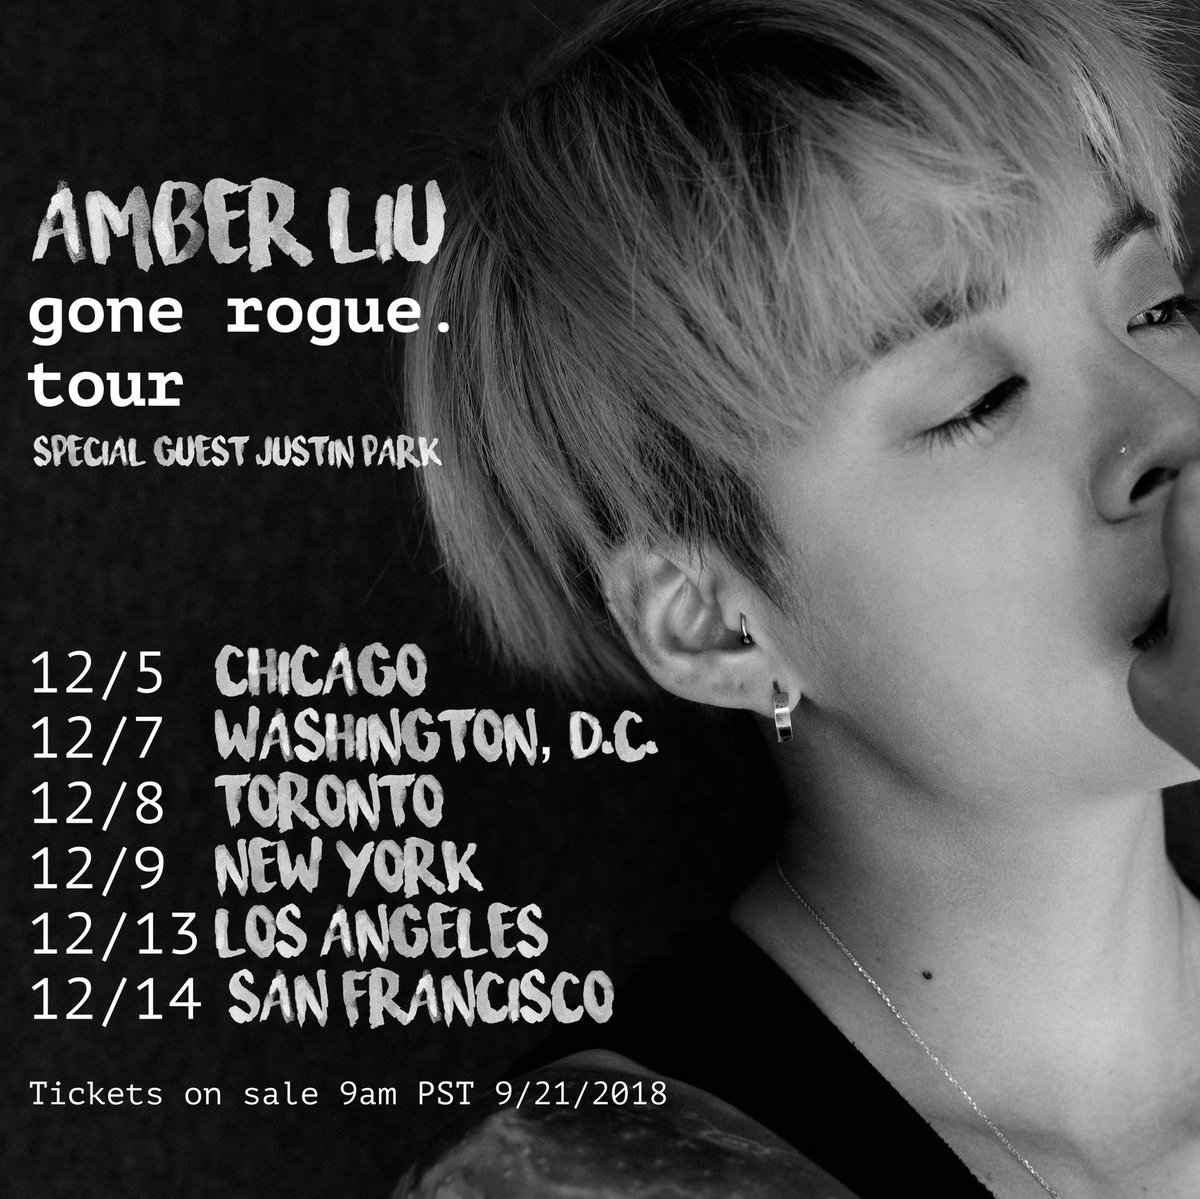 Amber Gone Rogue Tour